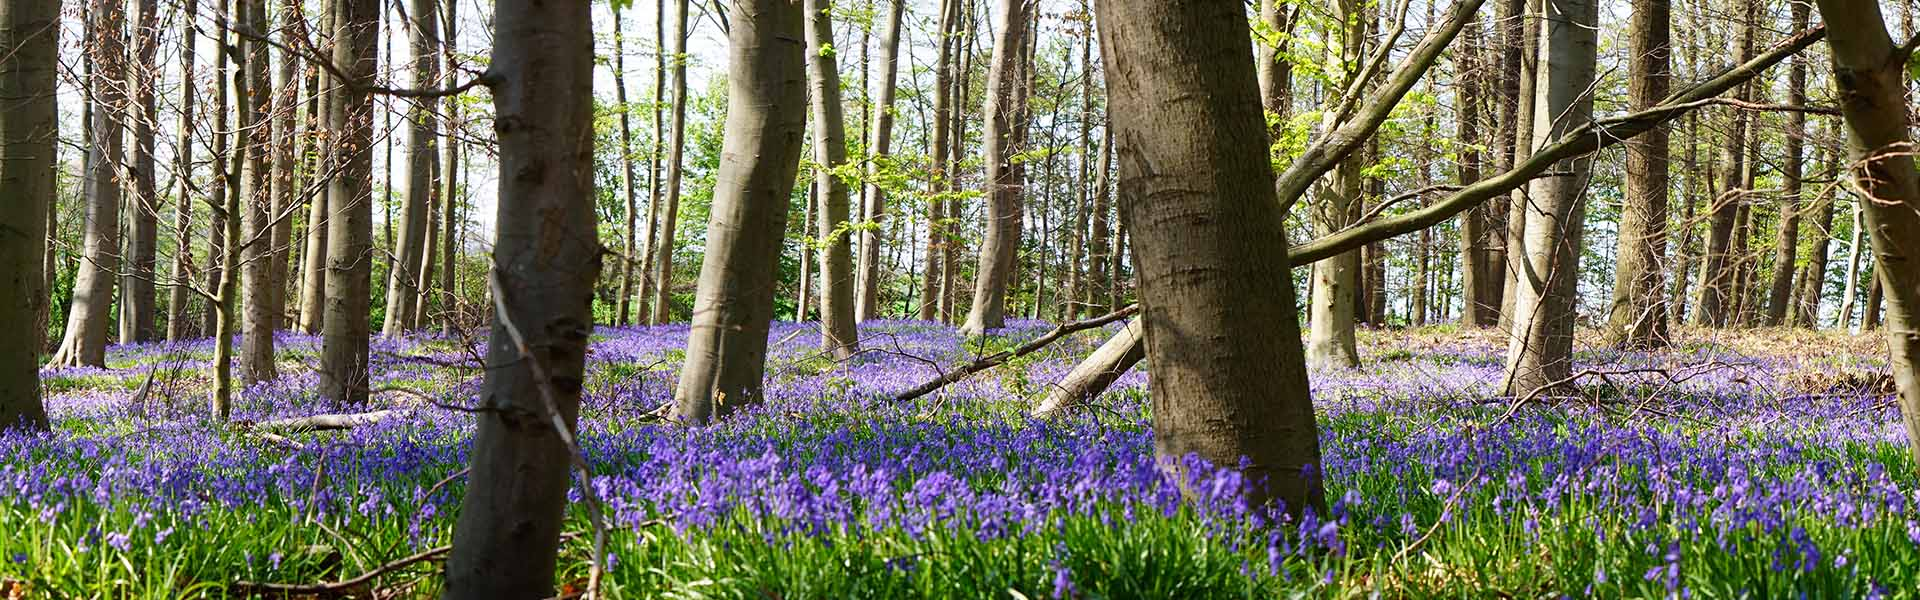 Bluebell Wood at Toys Hill